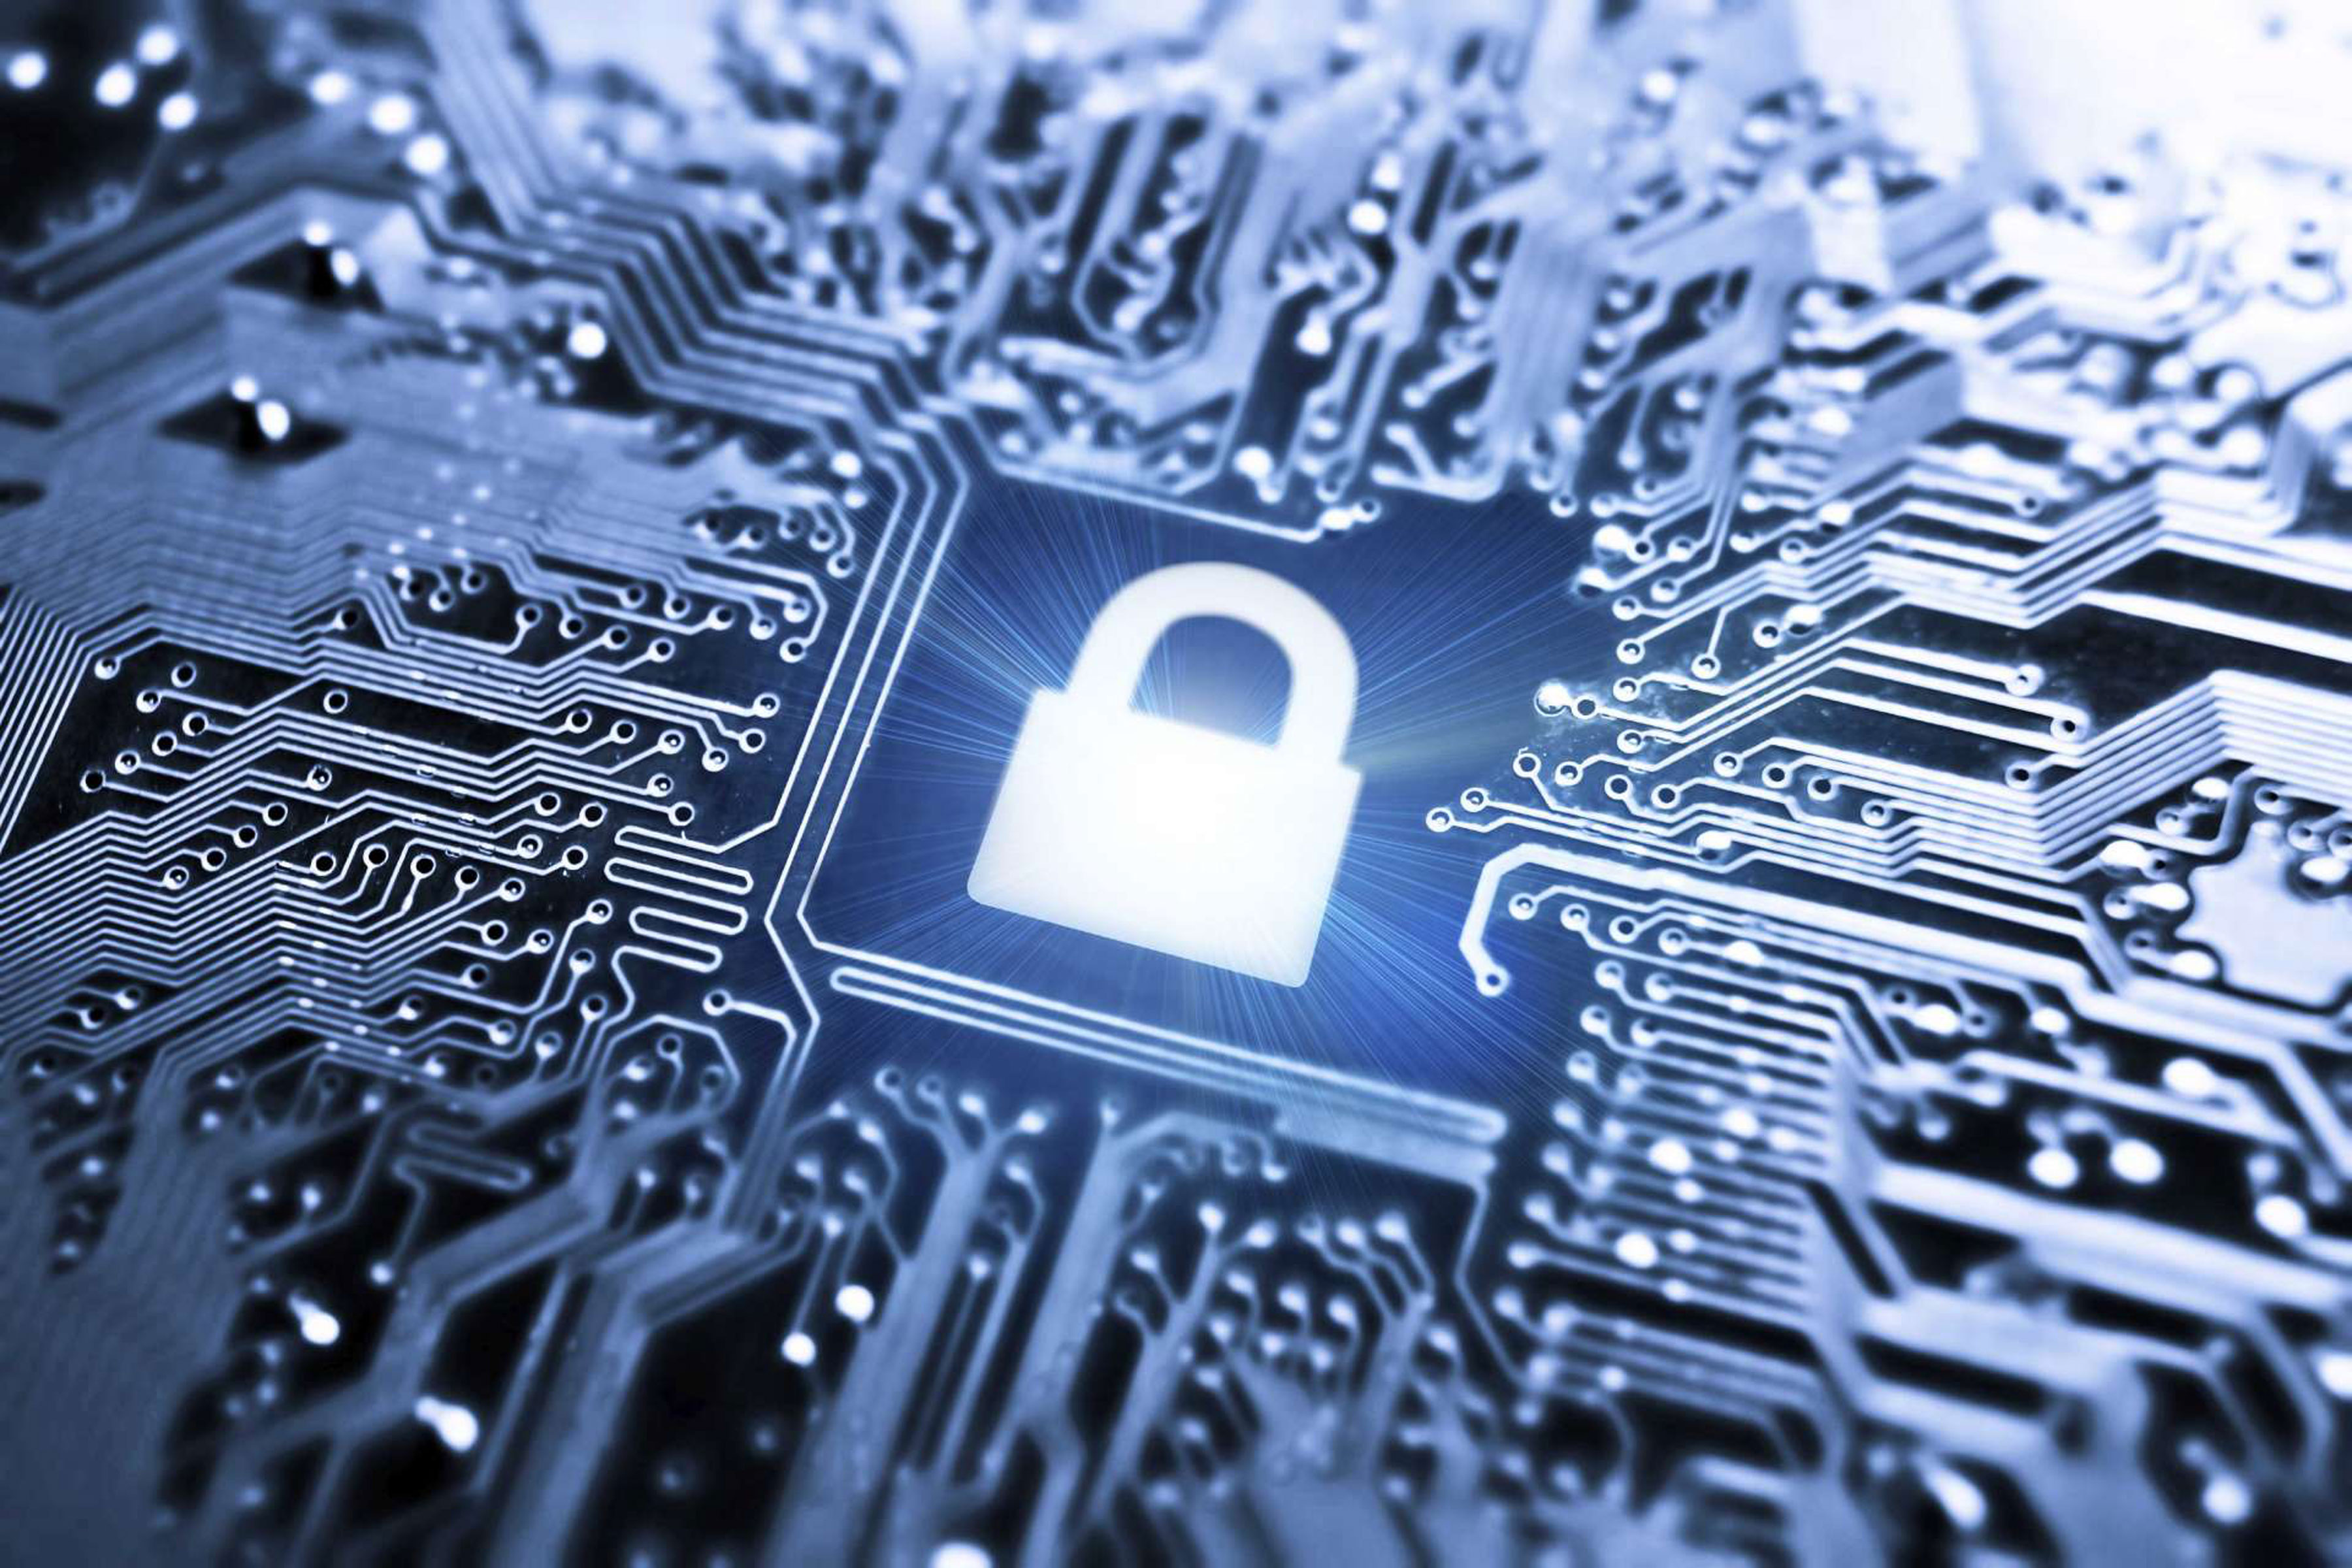 Santosa Consulting specialising in Cyber Security and Big Data Analysis, Sydney Australia.